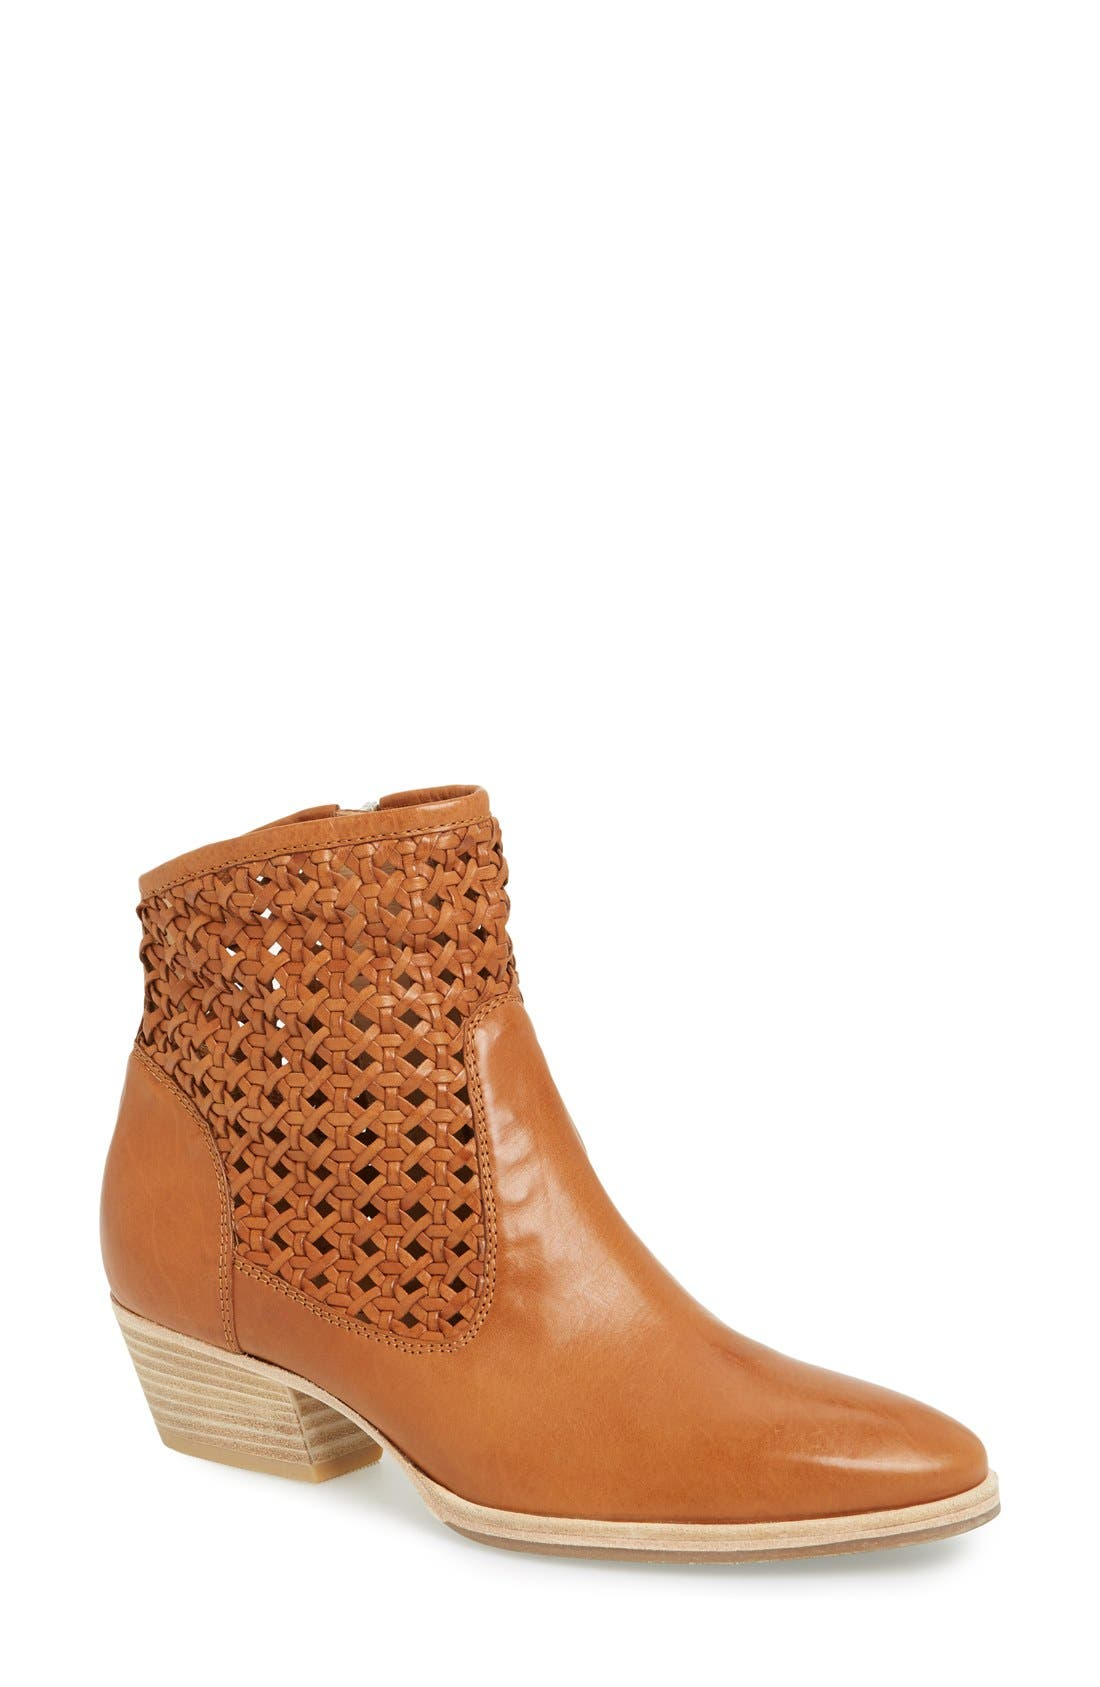 Alternate Image 1 Selected - Aquatalia by Marvin K. 'Faelyn' Leather Western Boot (Women)